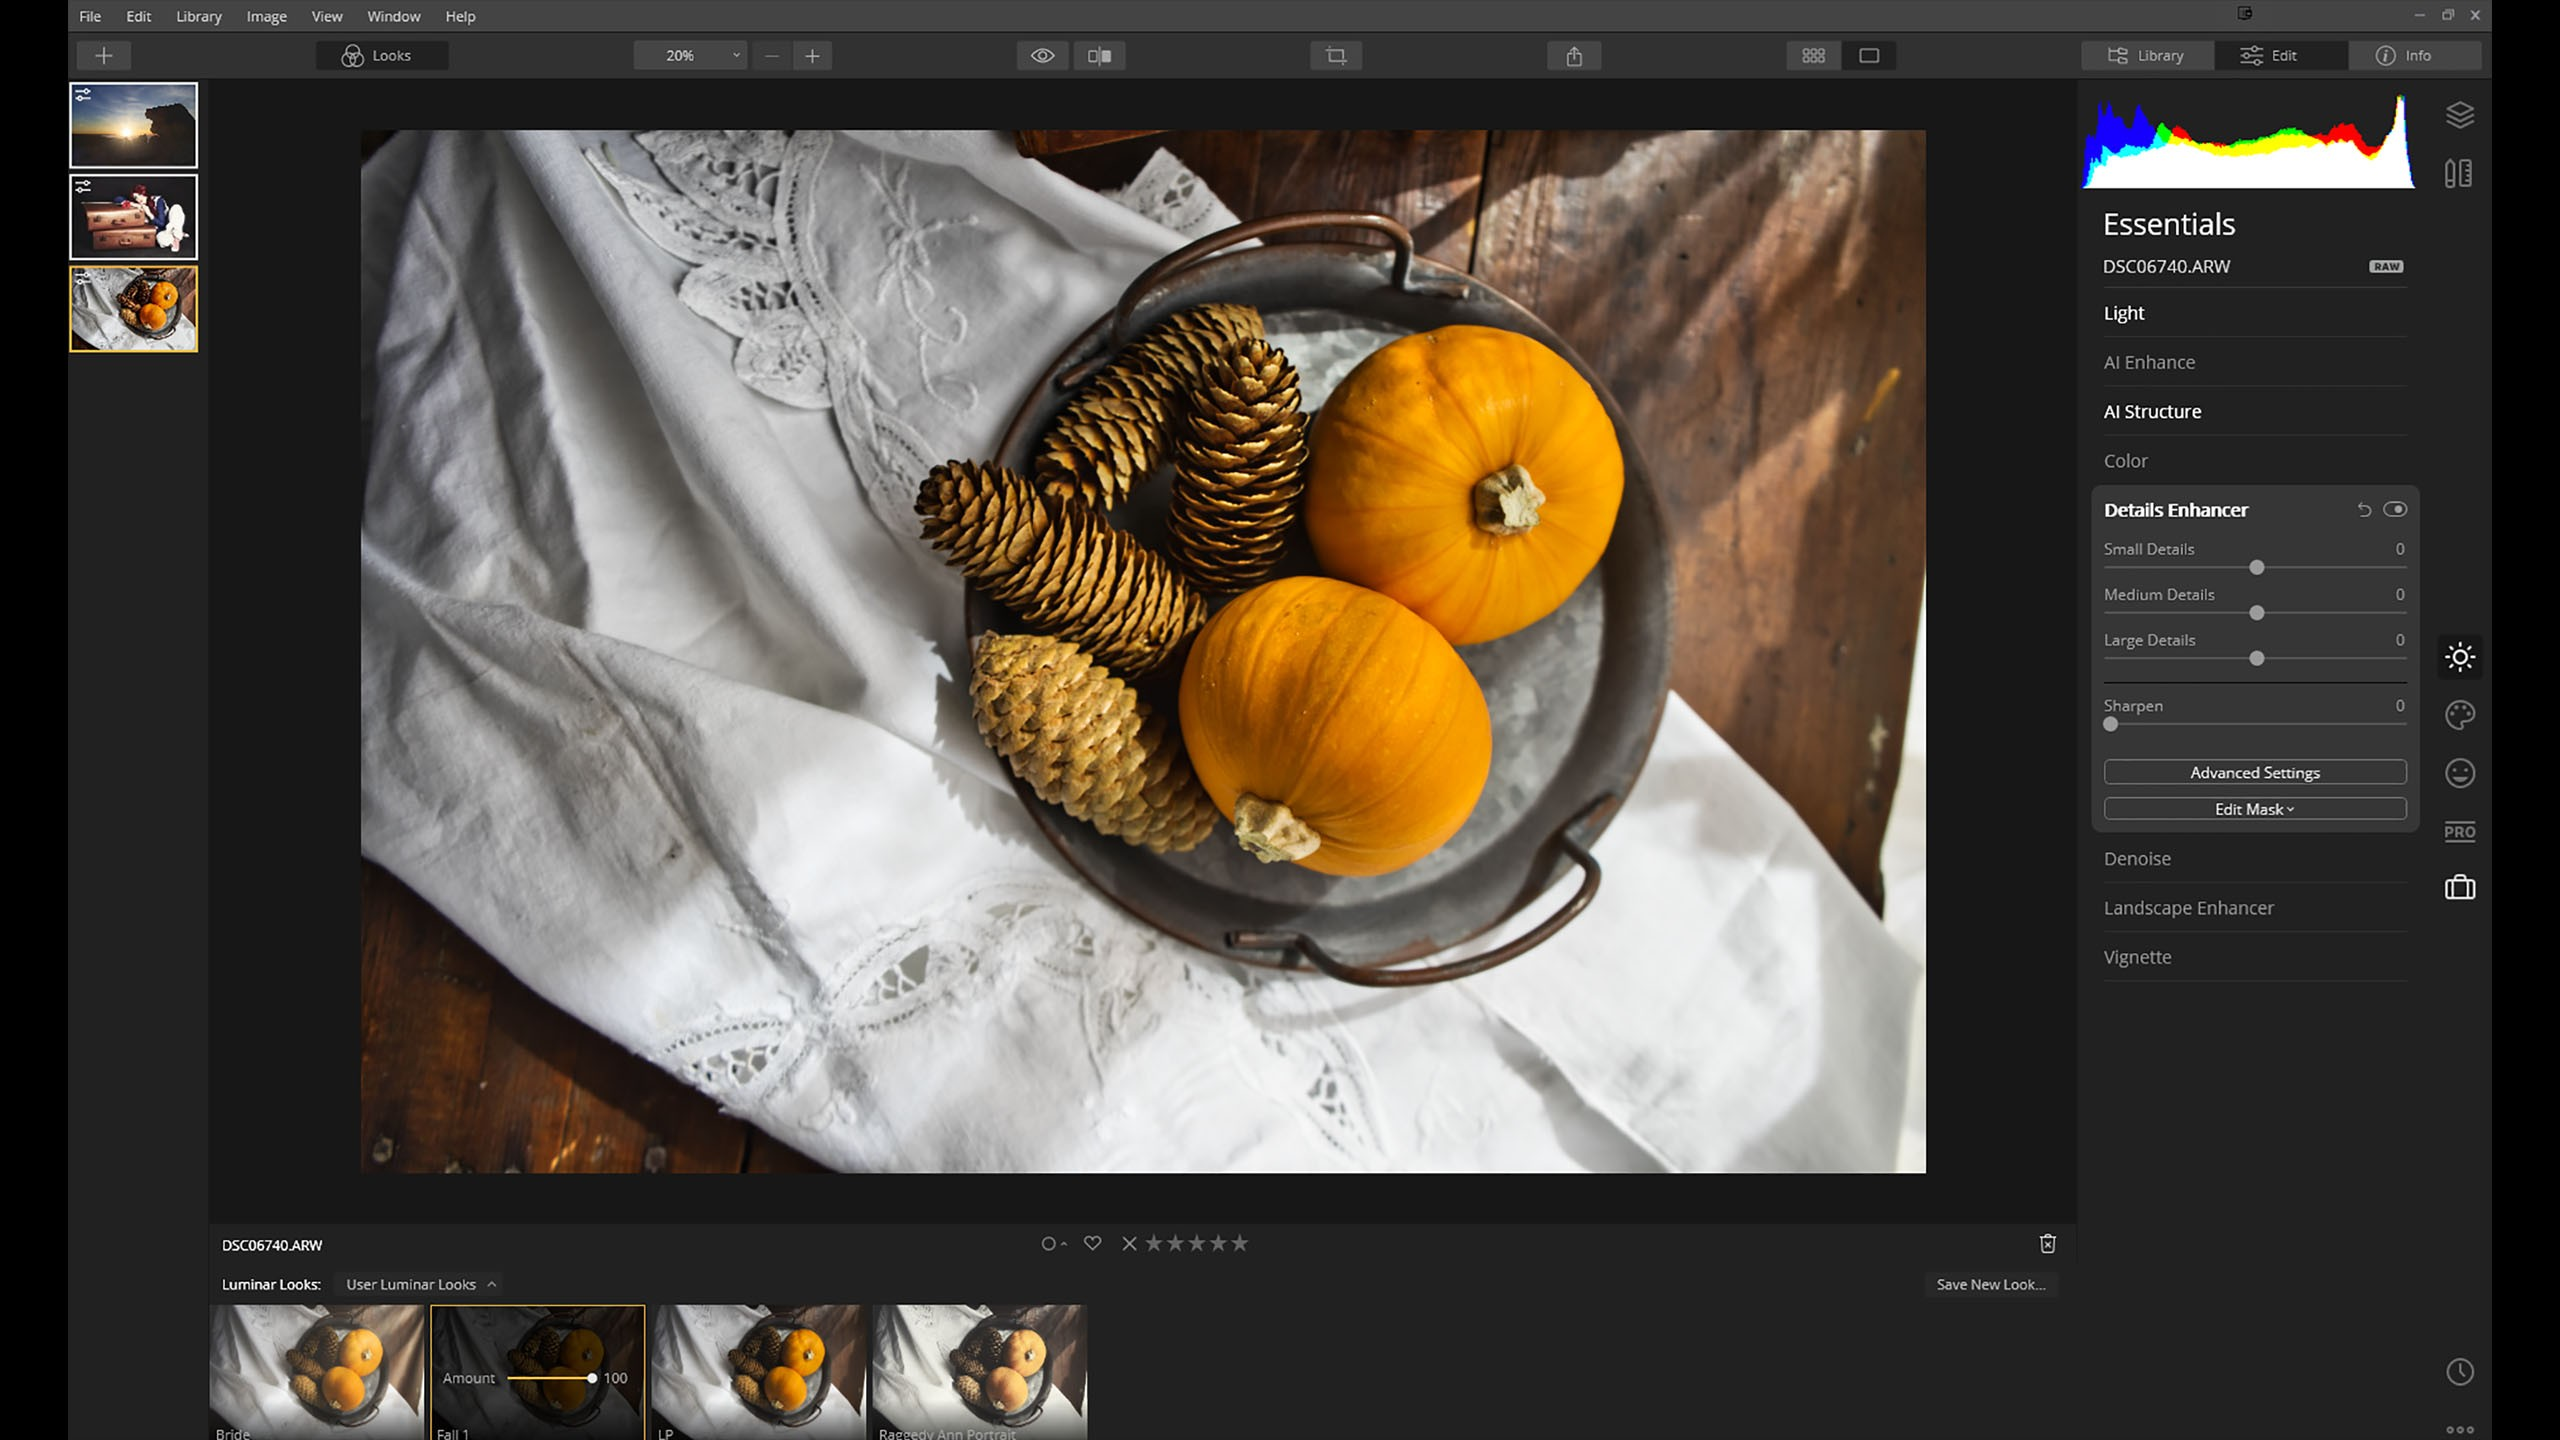 My first look at Luminar 4